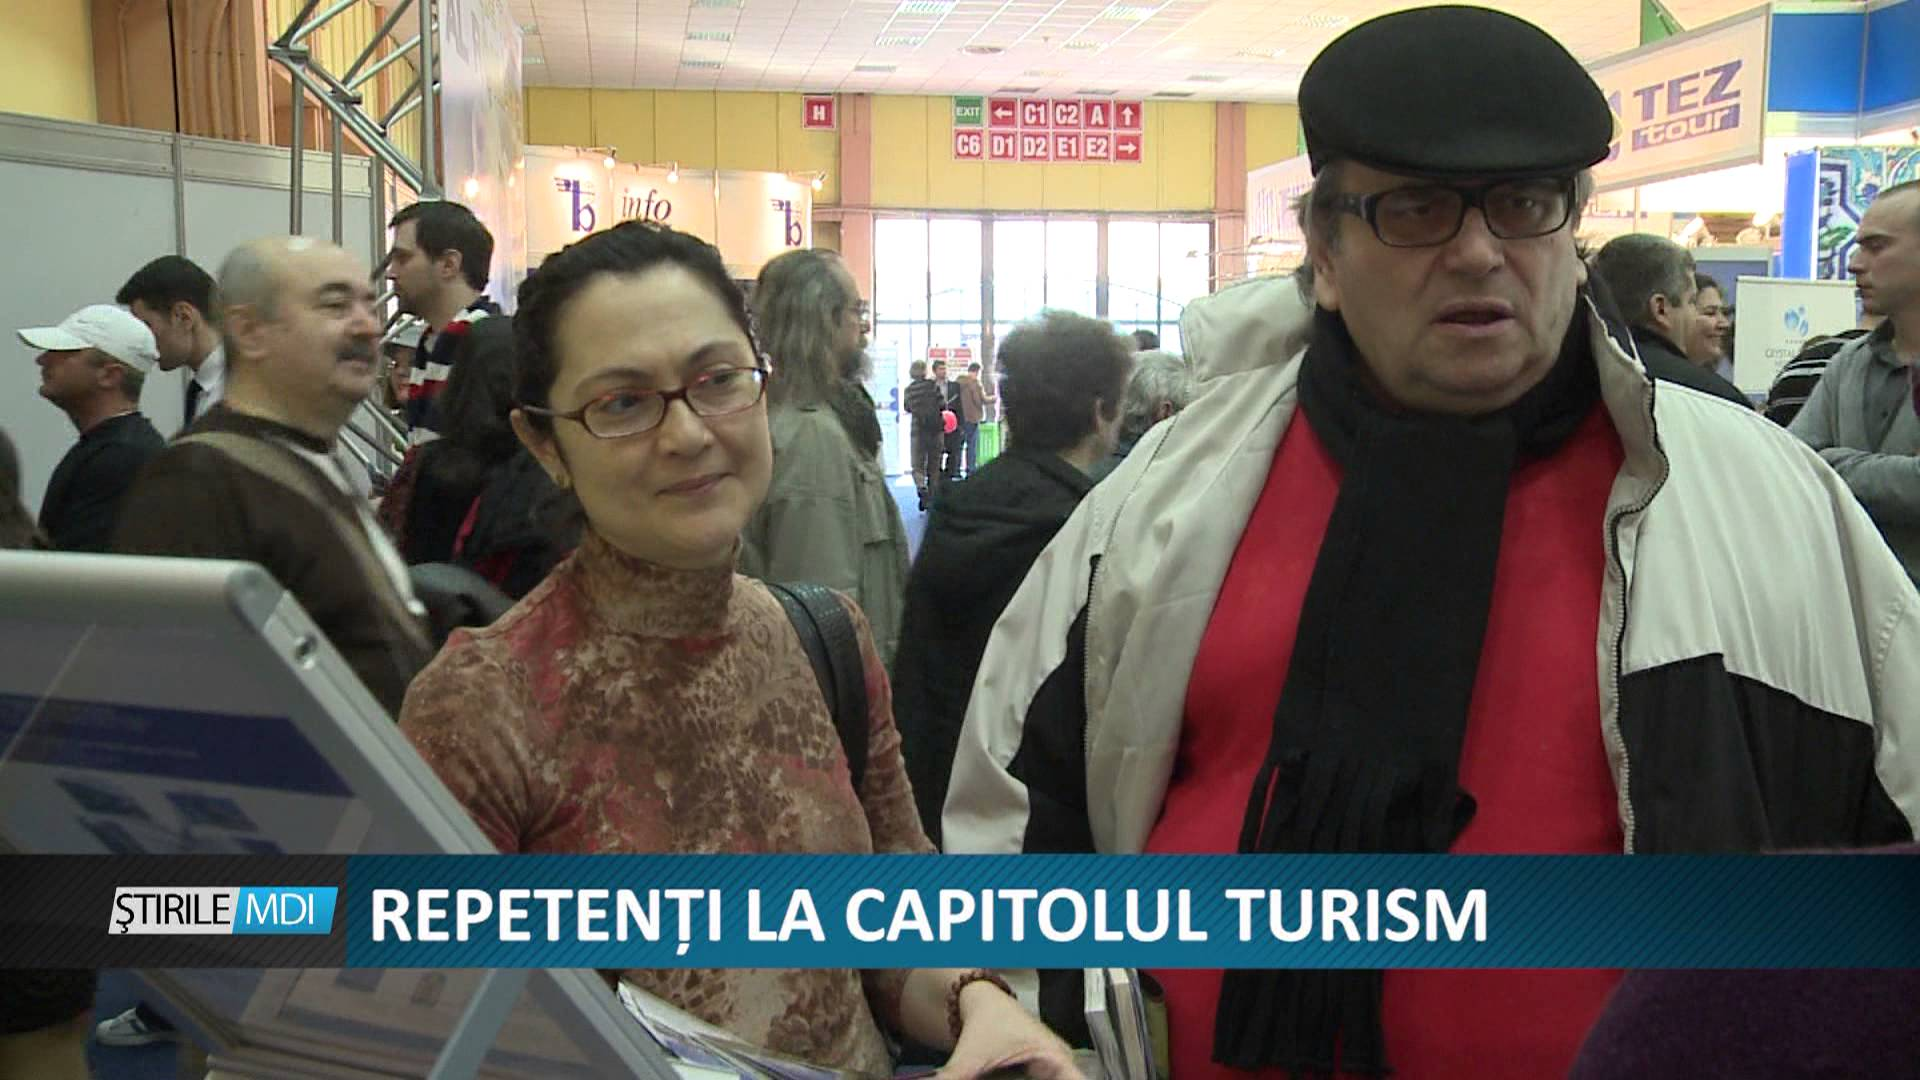 REPETENȚI LA CAPITOLUL TURISM – VIDEO